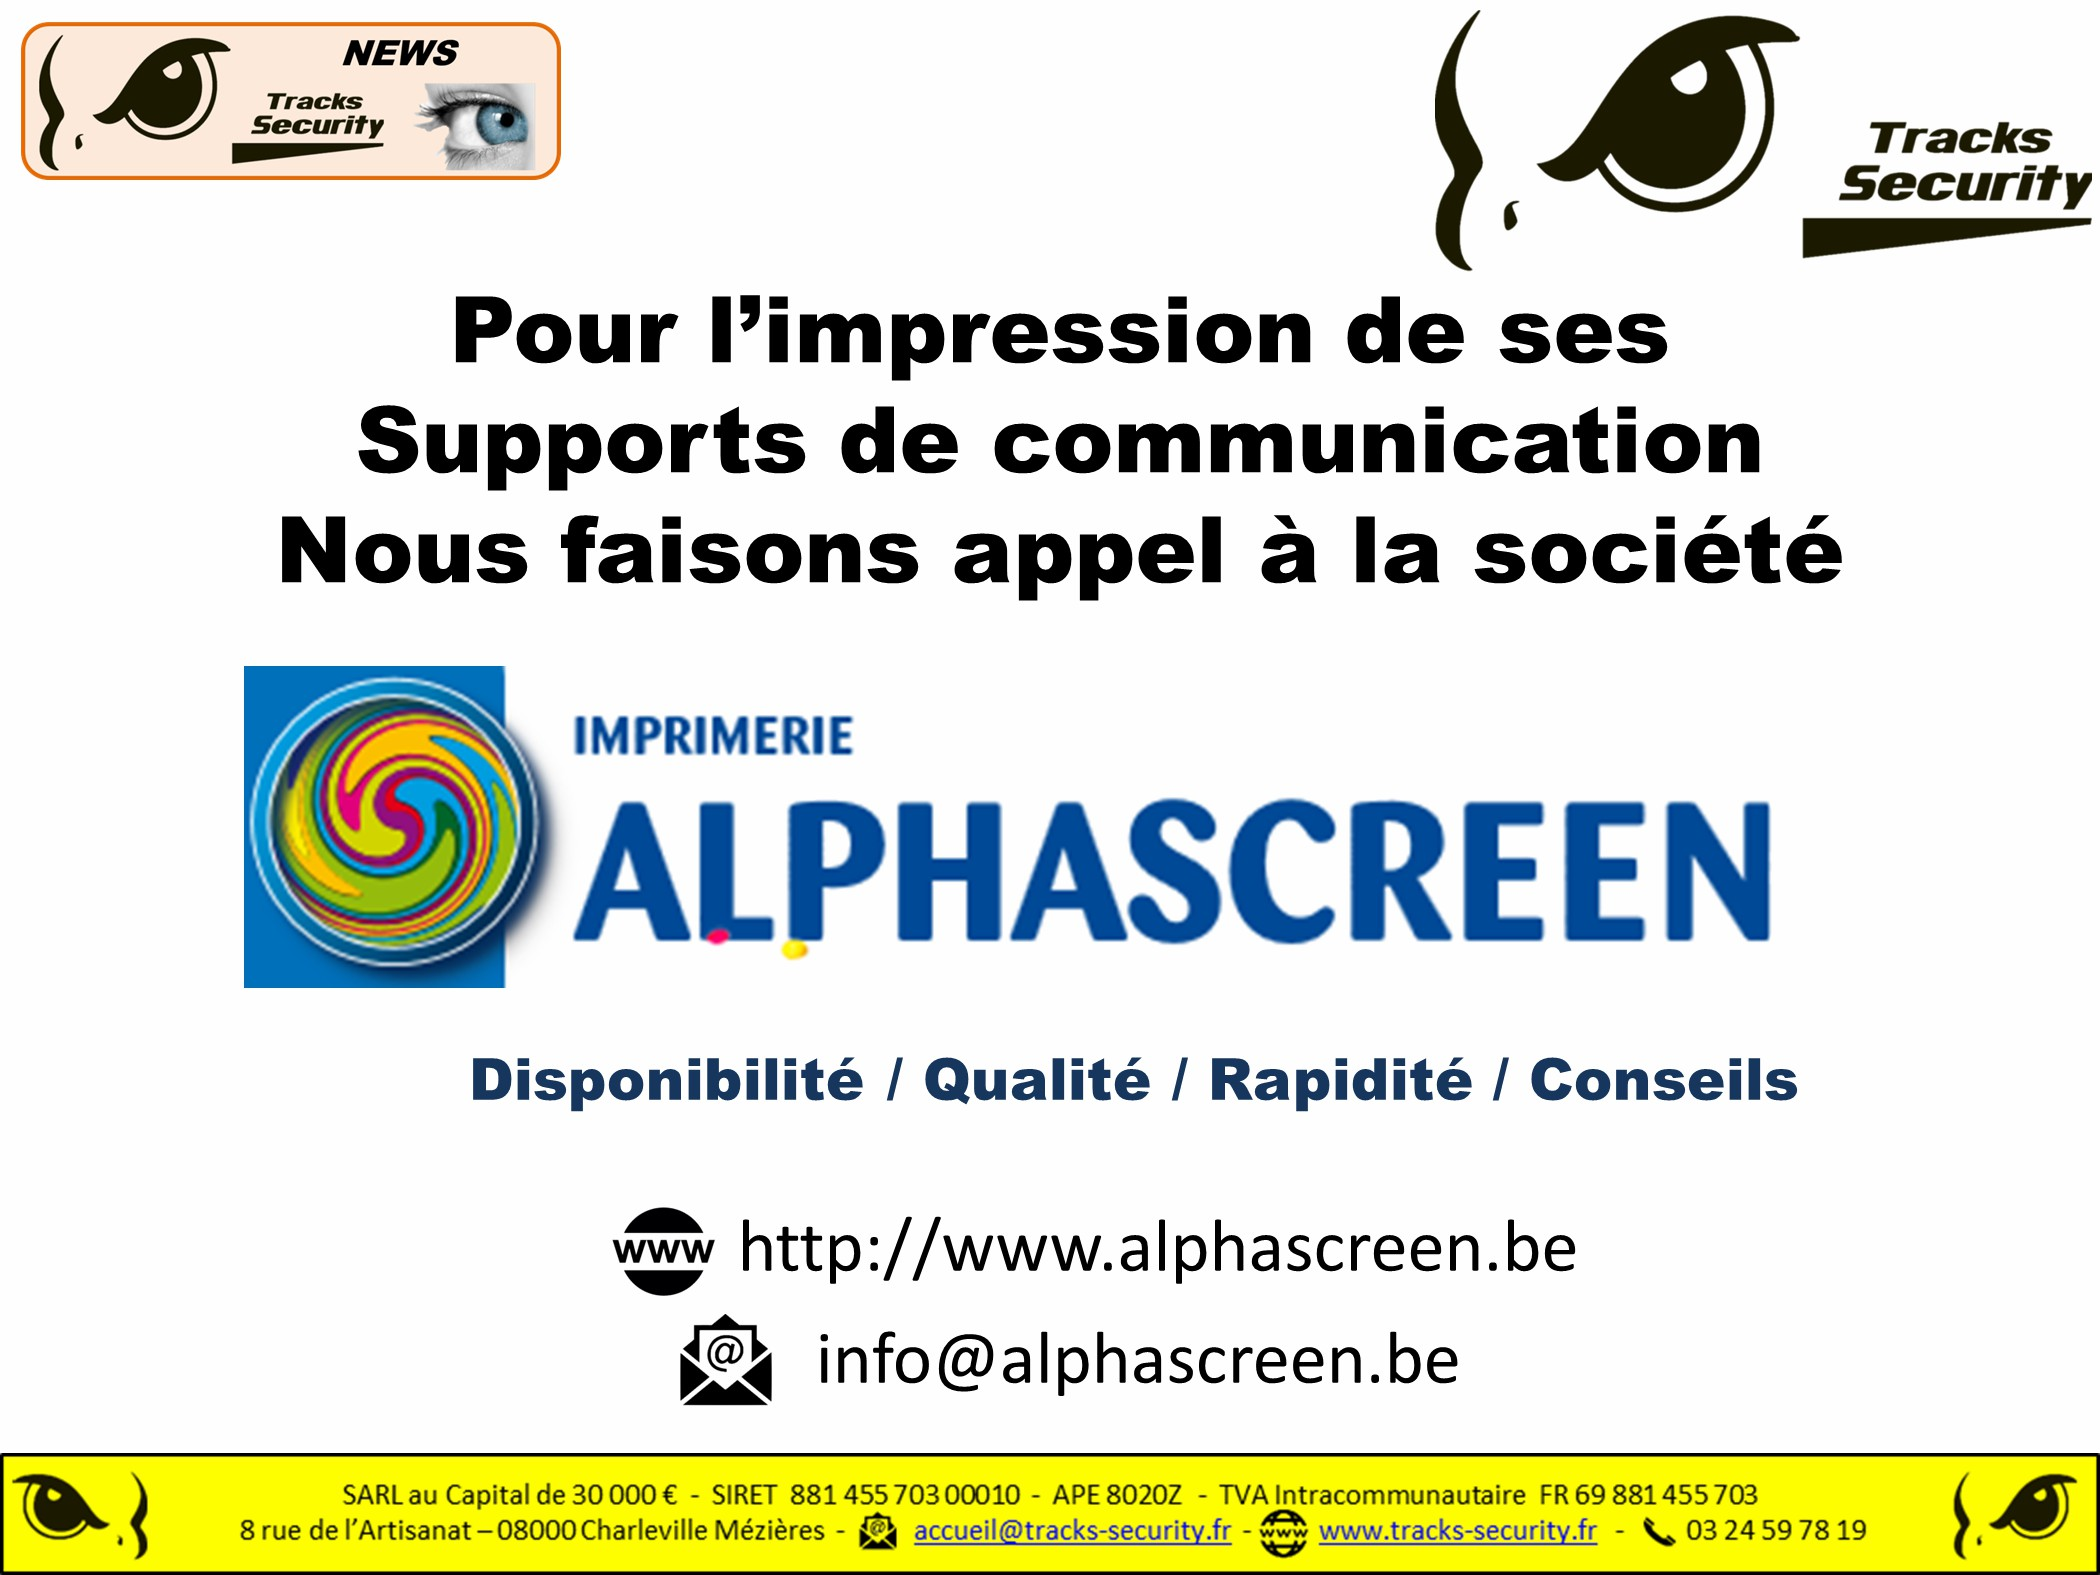 Alpha screen